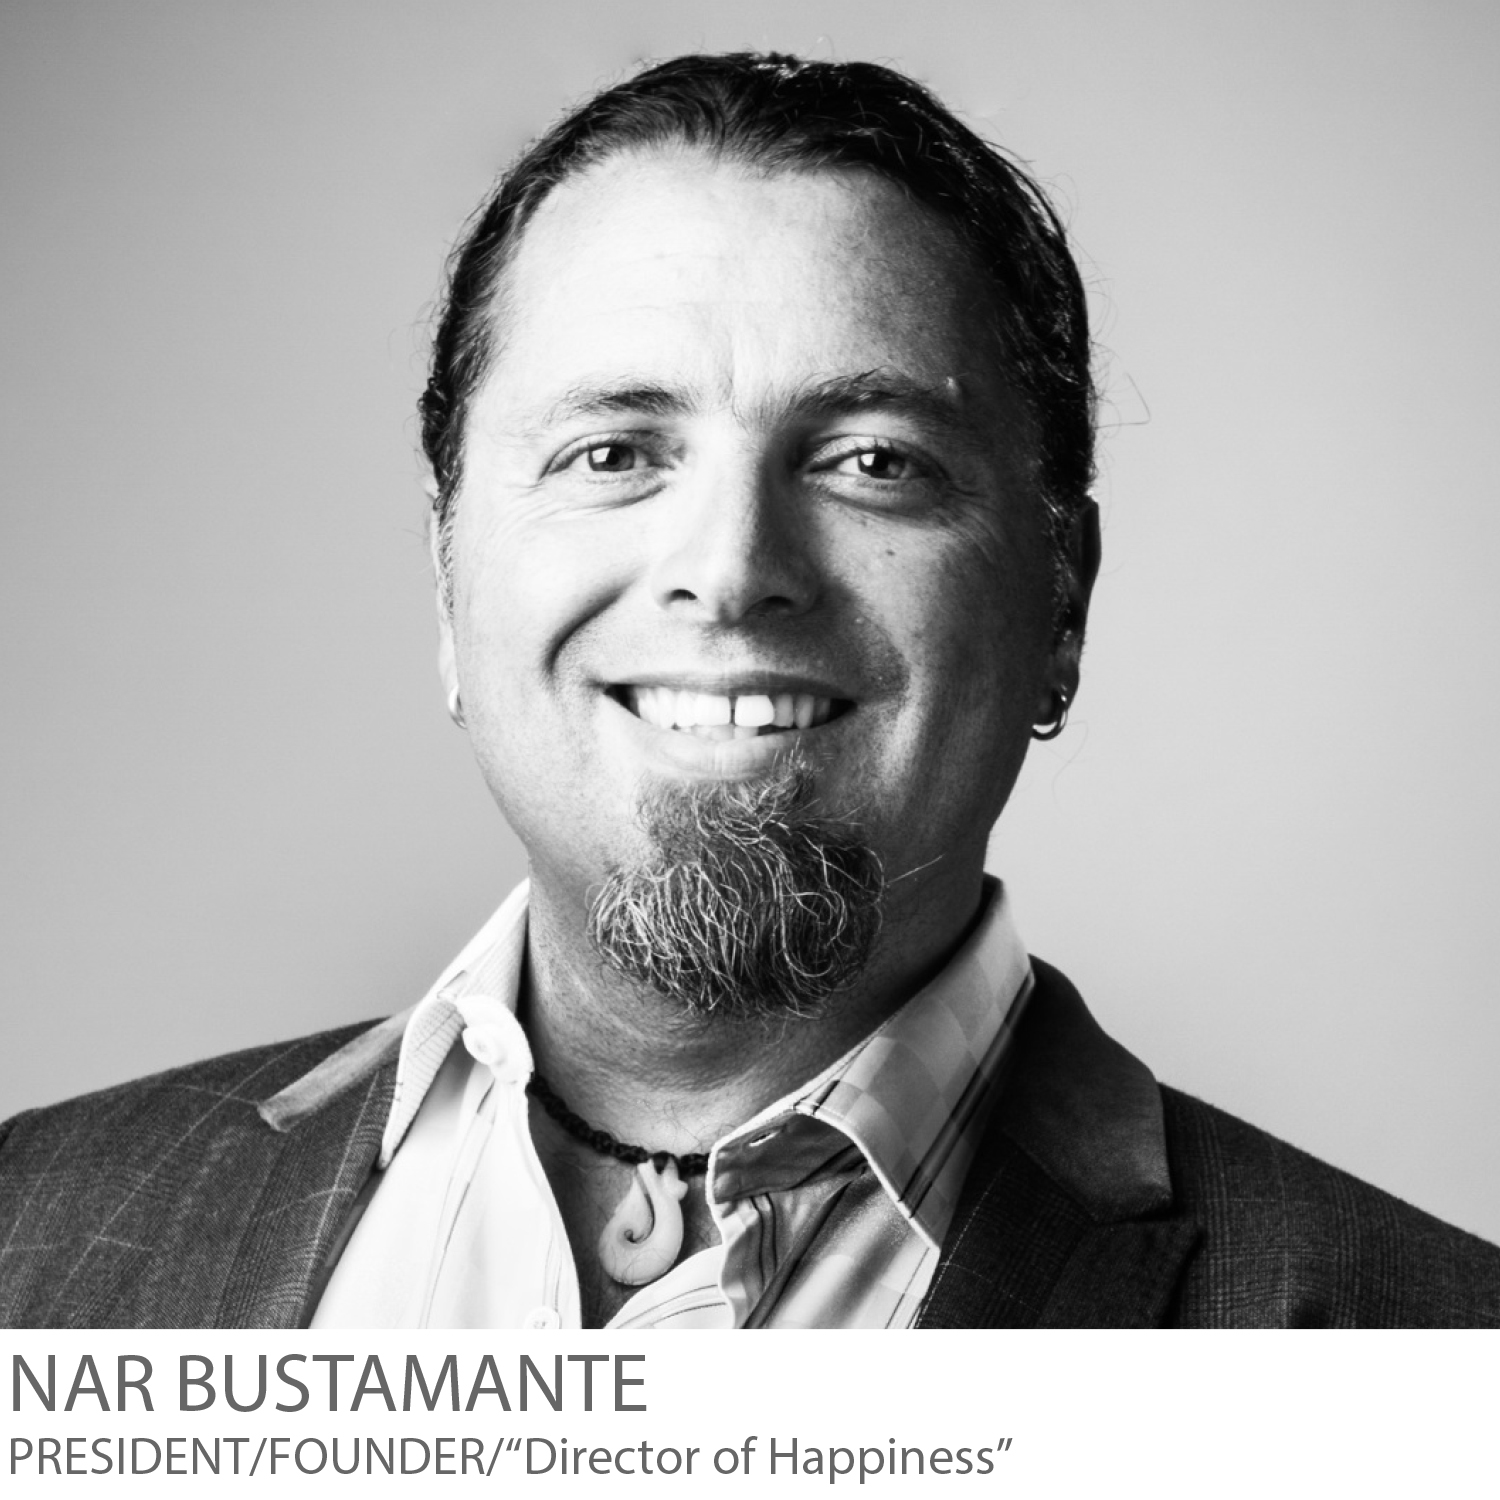 NarBustamante-headshot-ownerNarFineCarpentry-Sacrament8.jpg